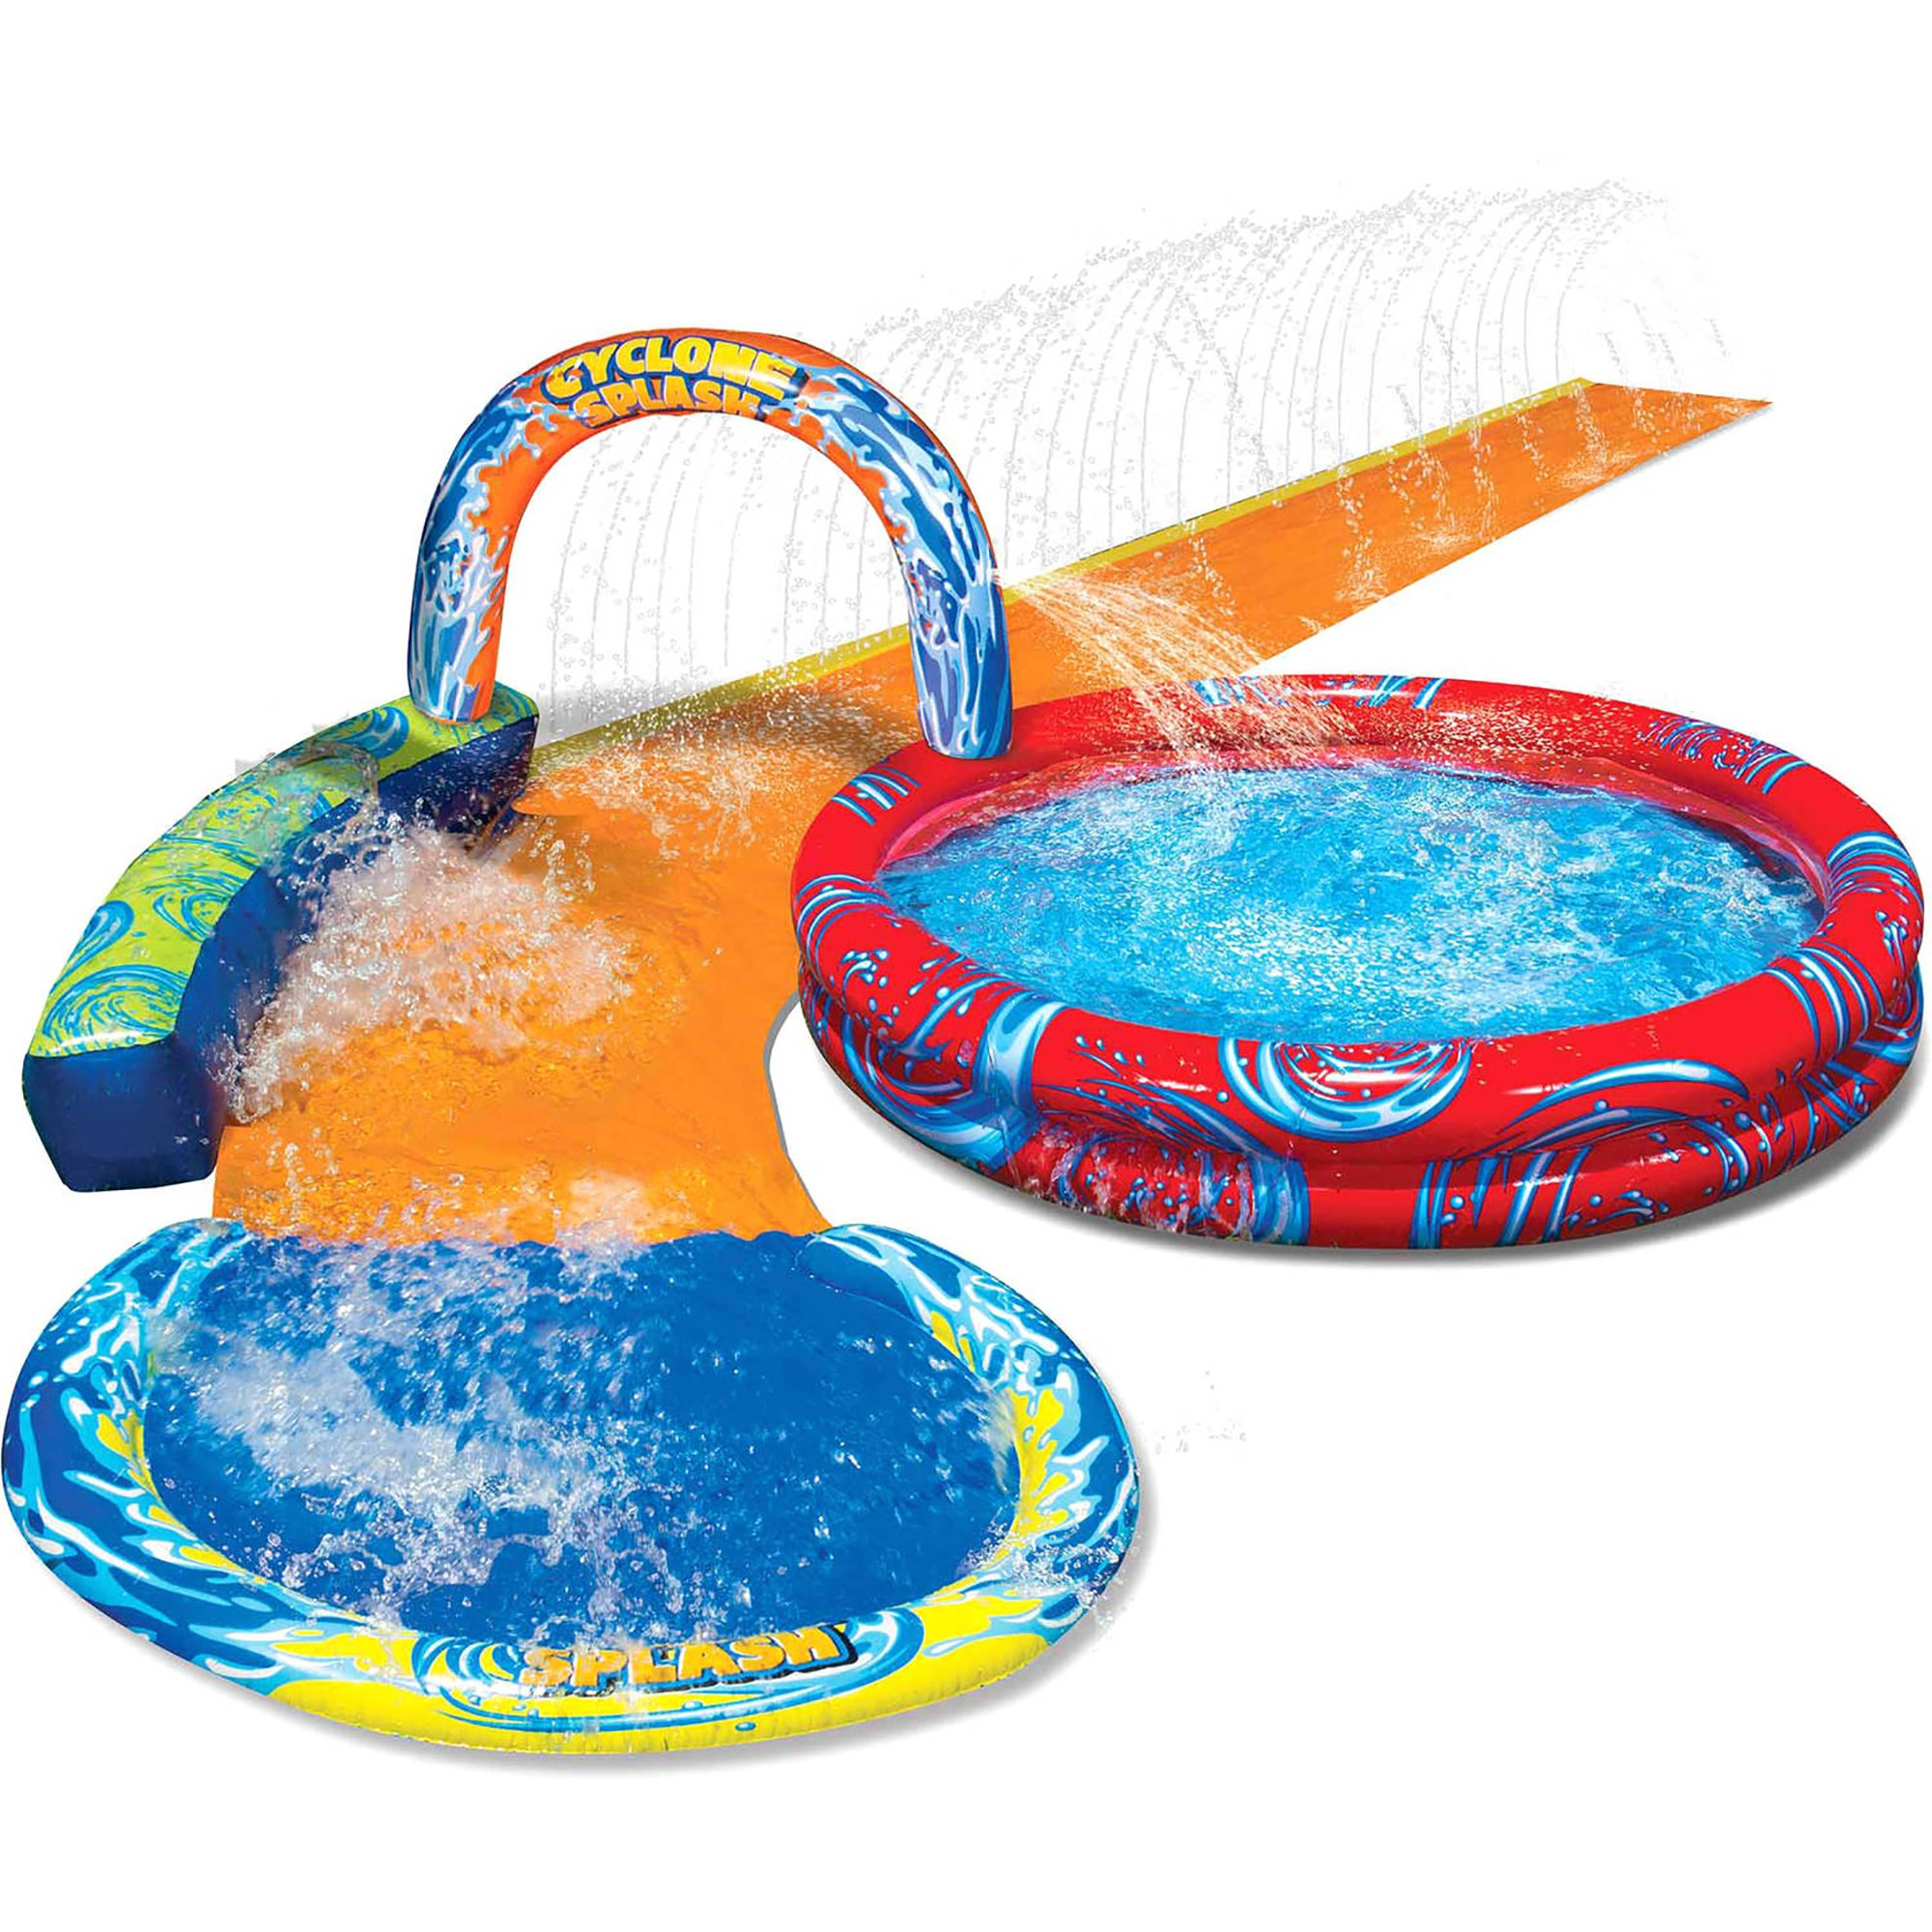 BANZAI Cyclone Splash Park Inflatable with Sprinkling Slide and Water Aqua Pool by BANZAI